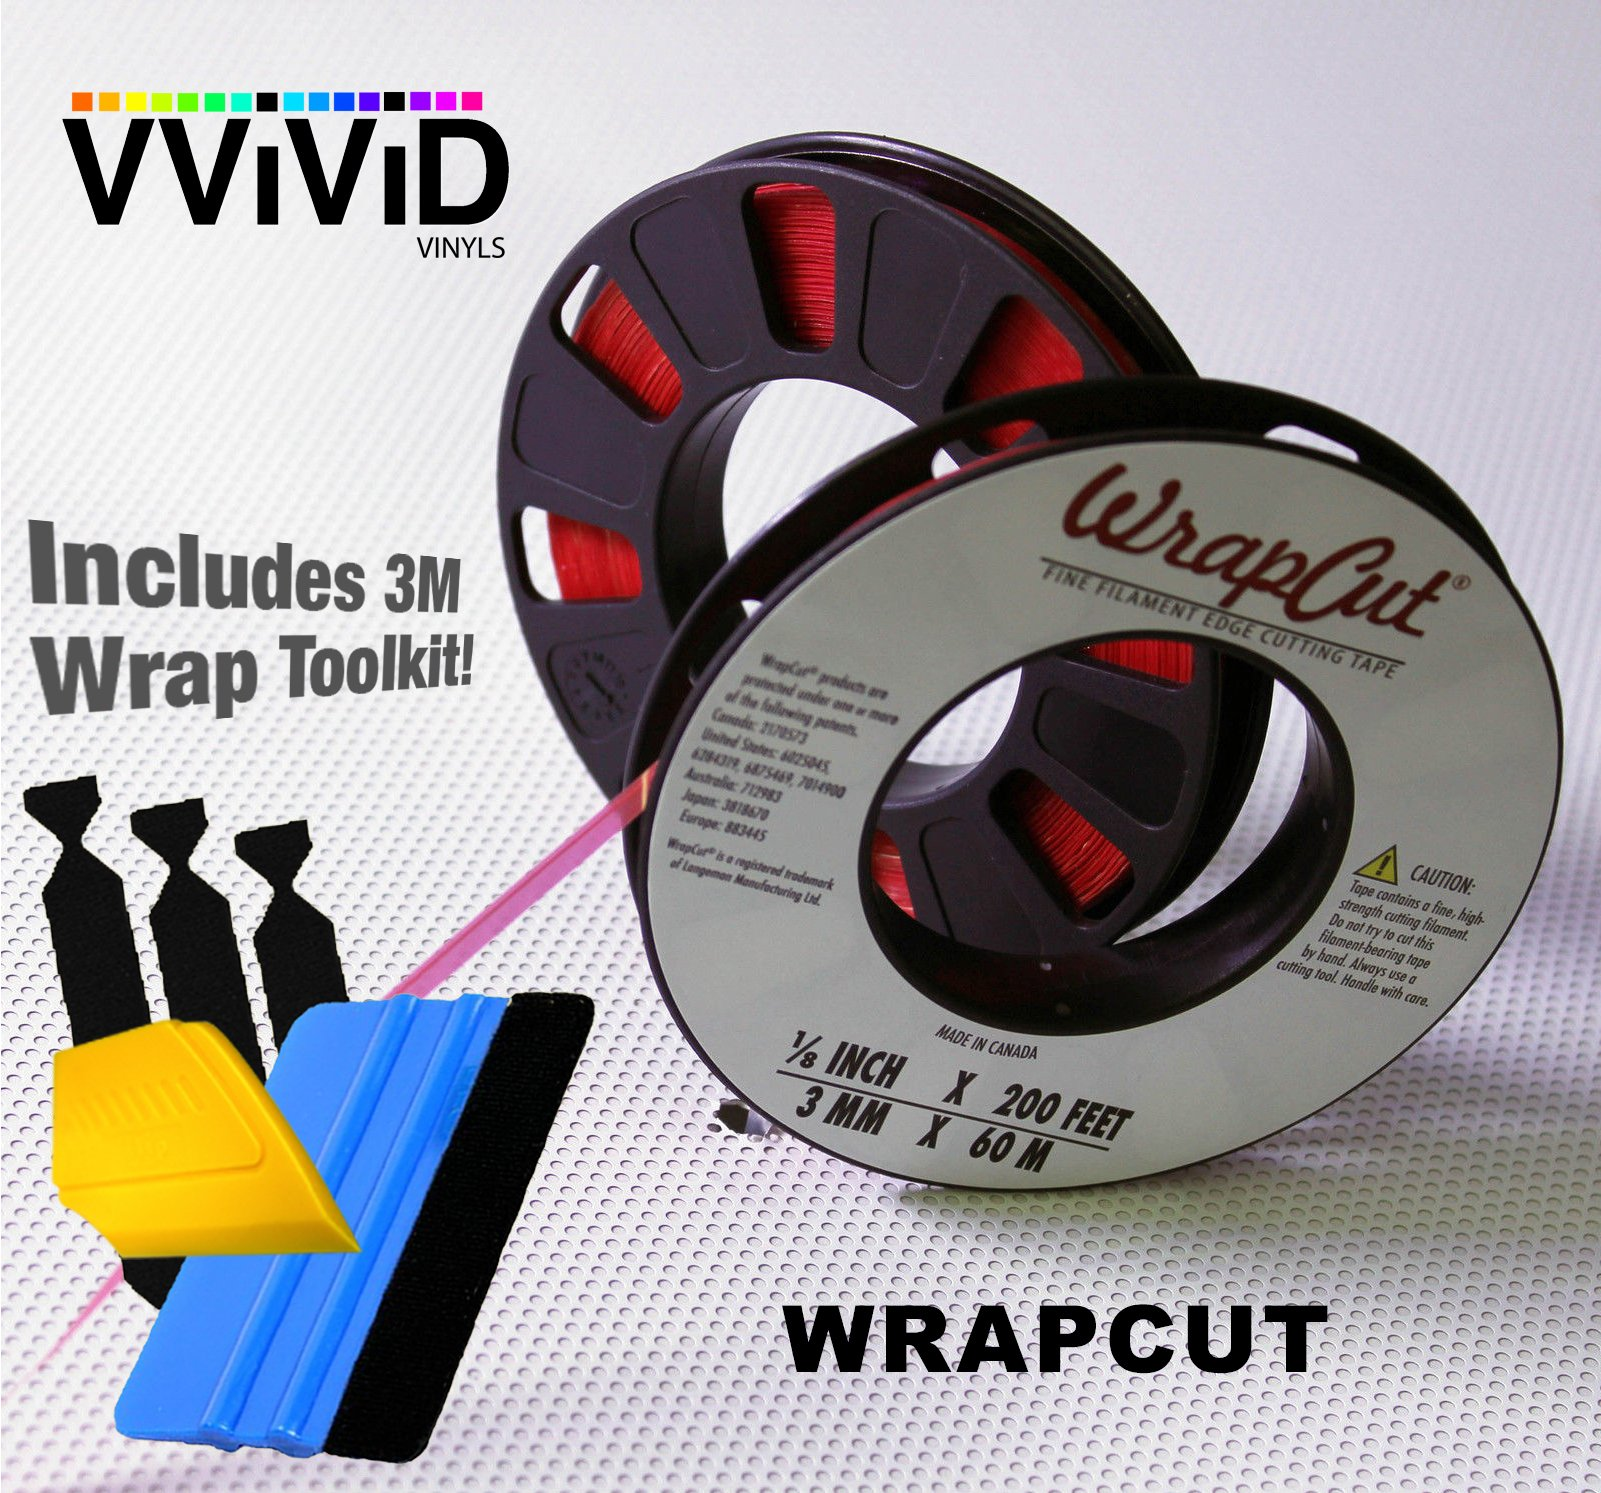 VViViD Wrap Cut Vinyl Wrap Edge Cutting Detailer Tape 200ft Including 3M Vinyl Wrap Toolkit (3 Rolls w/Toolkit (Squeegee, Detailer, 3 Felts)) by VViViD (Image #1)